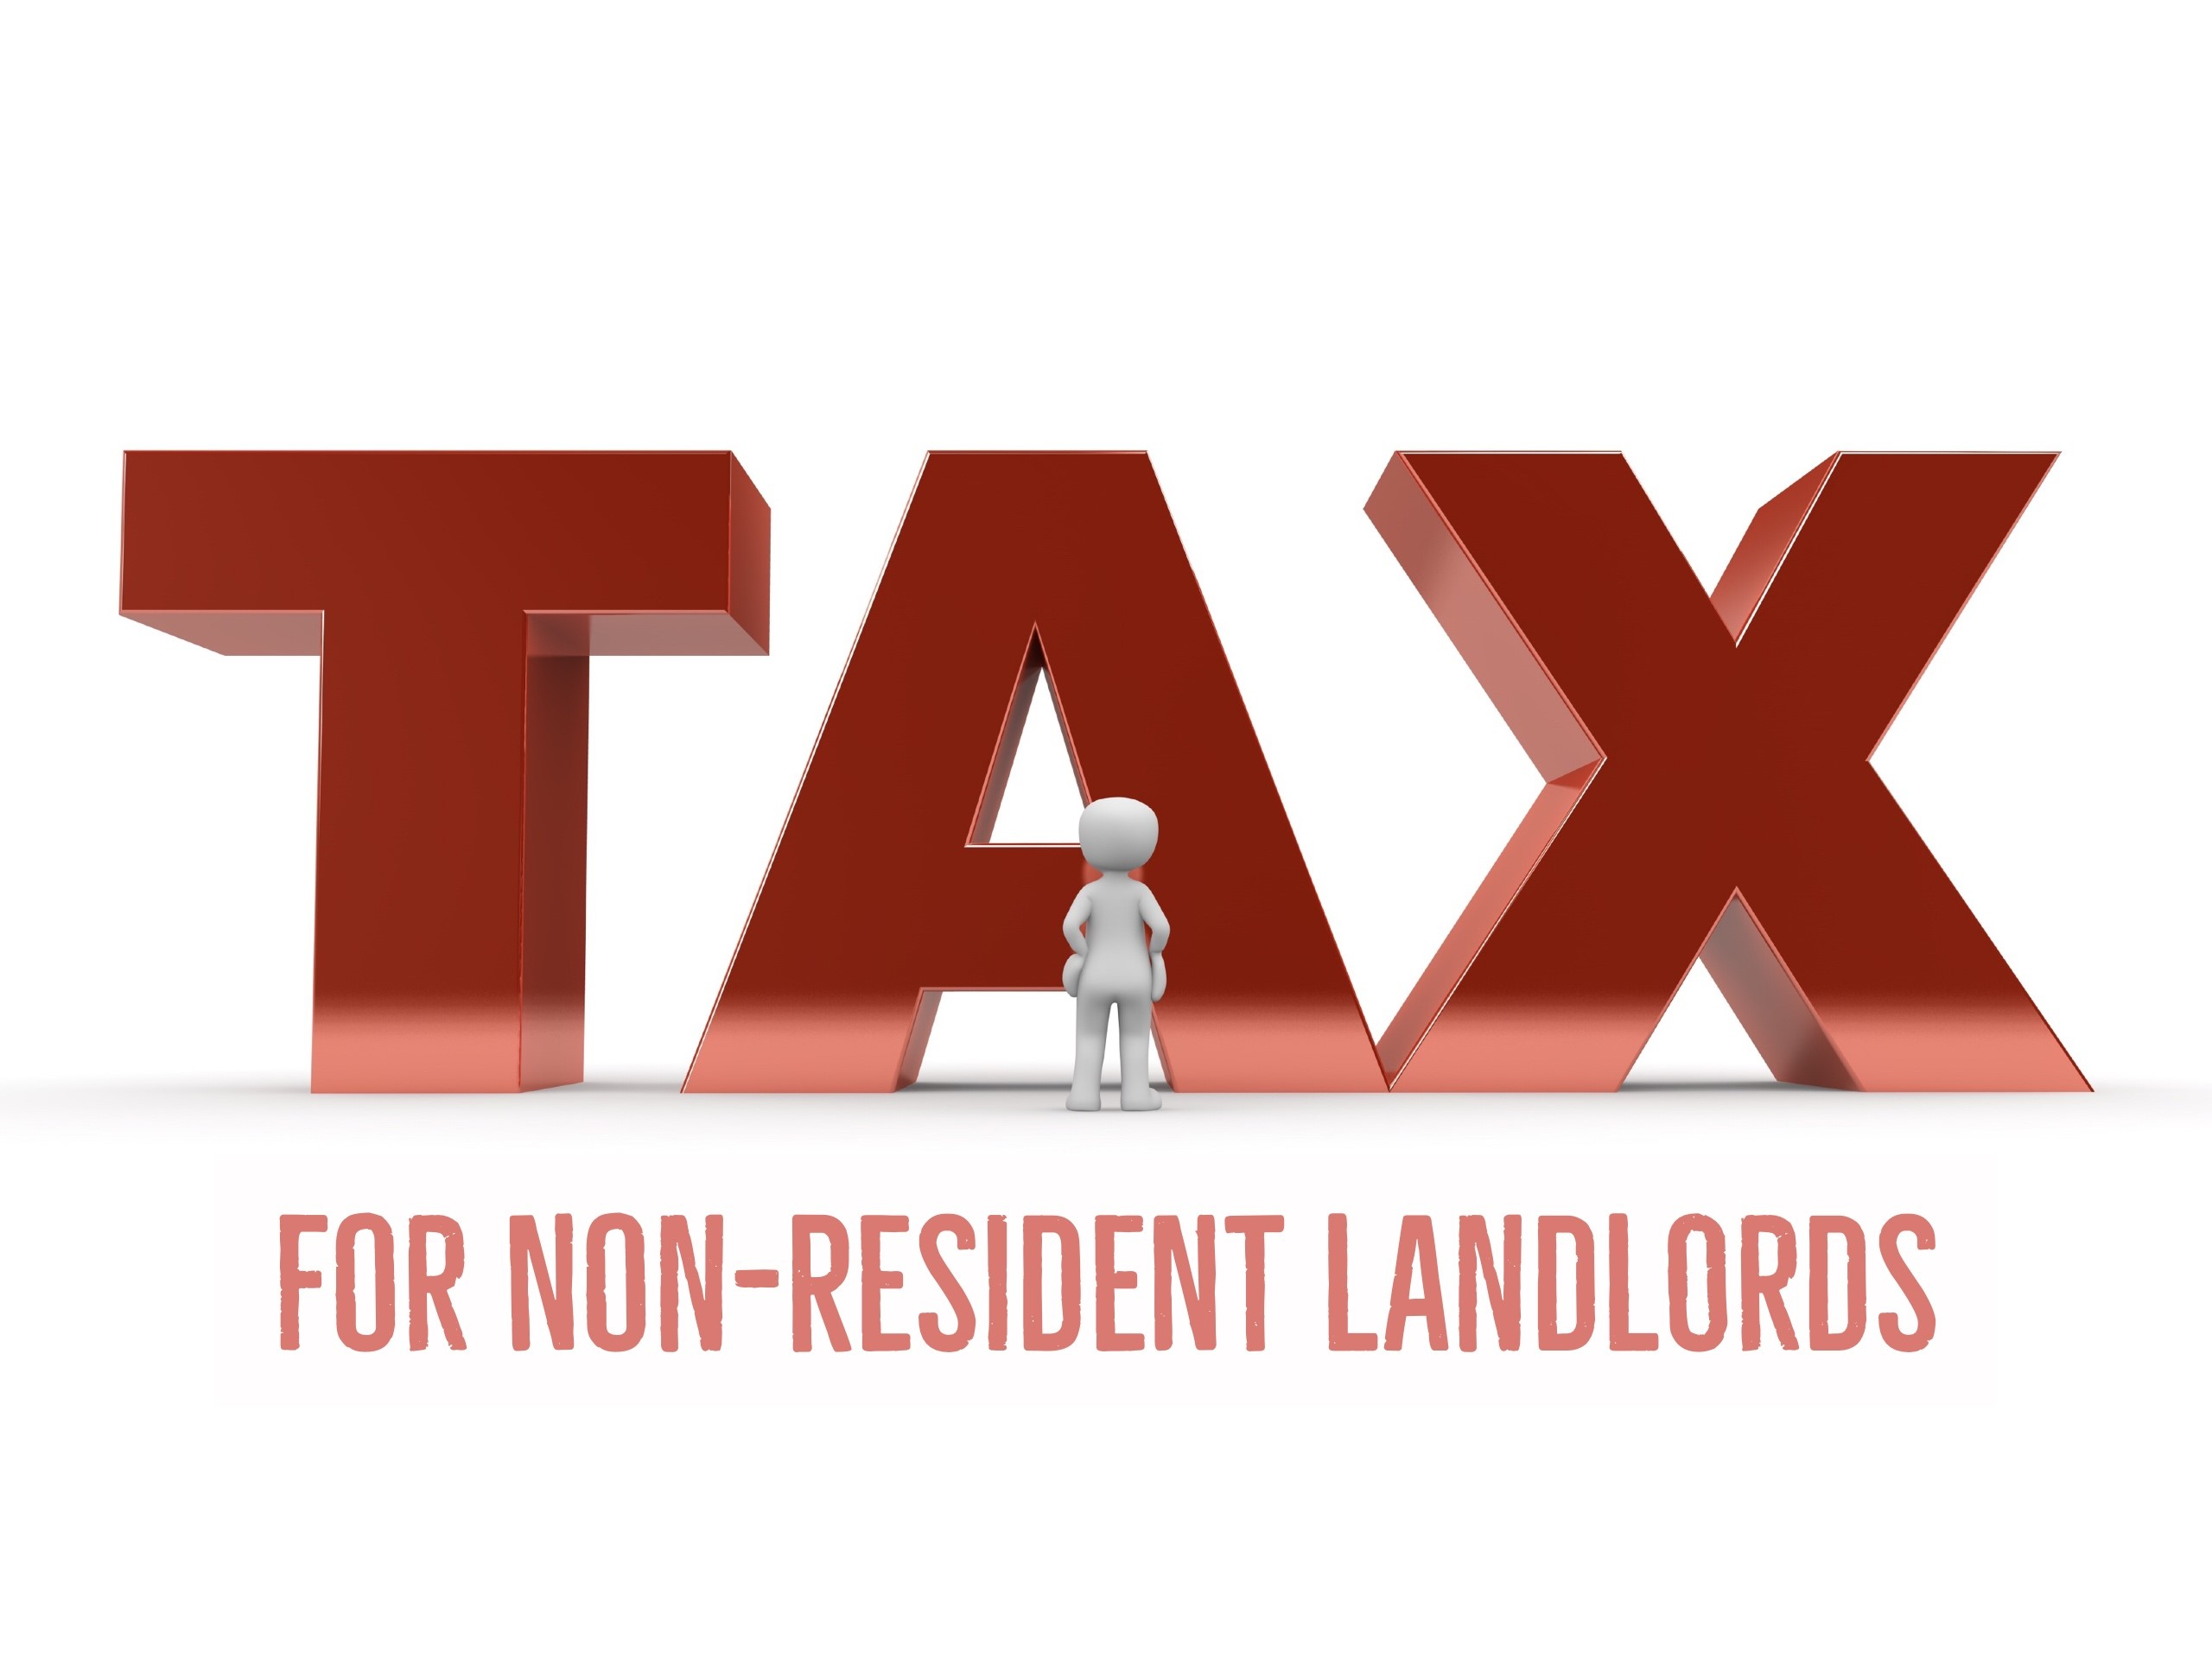 Non-resident landlord tax Image